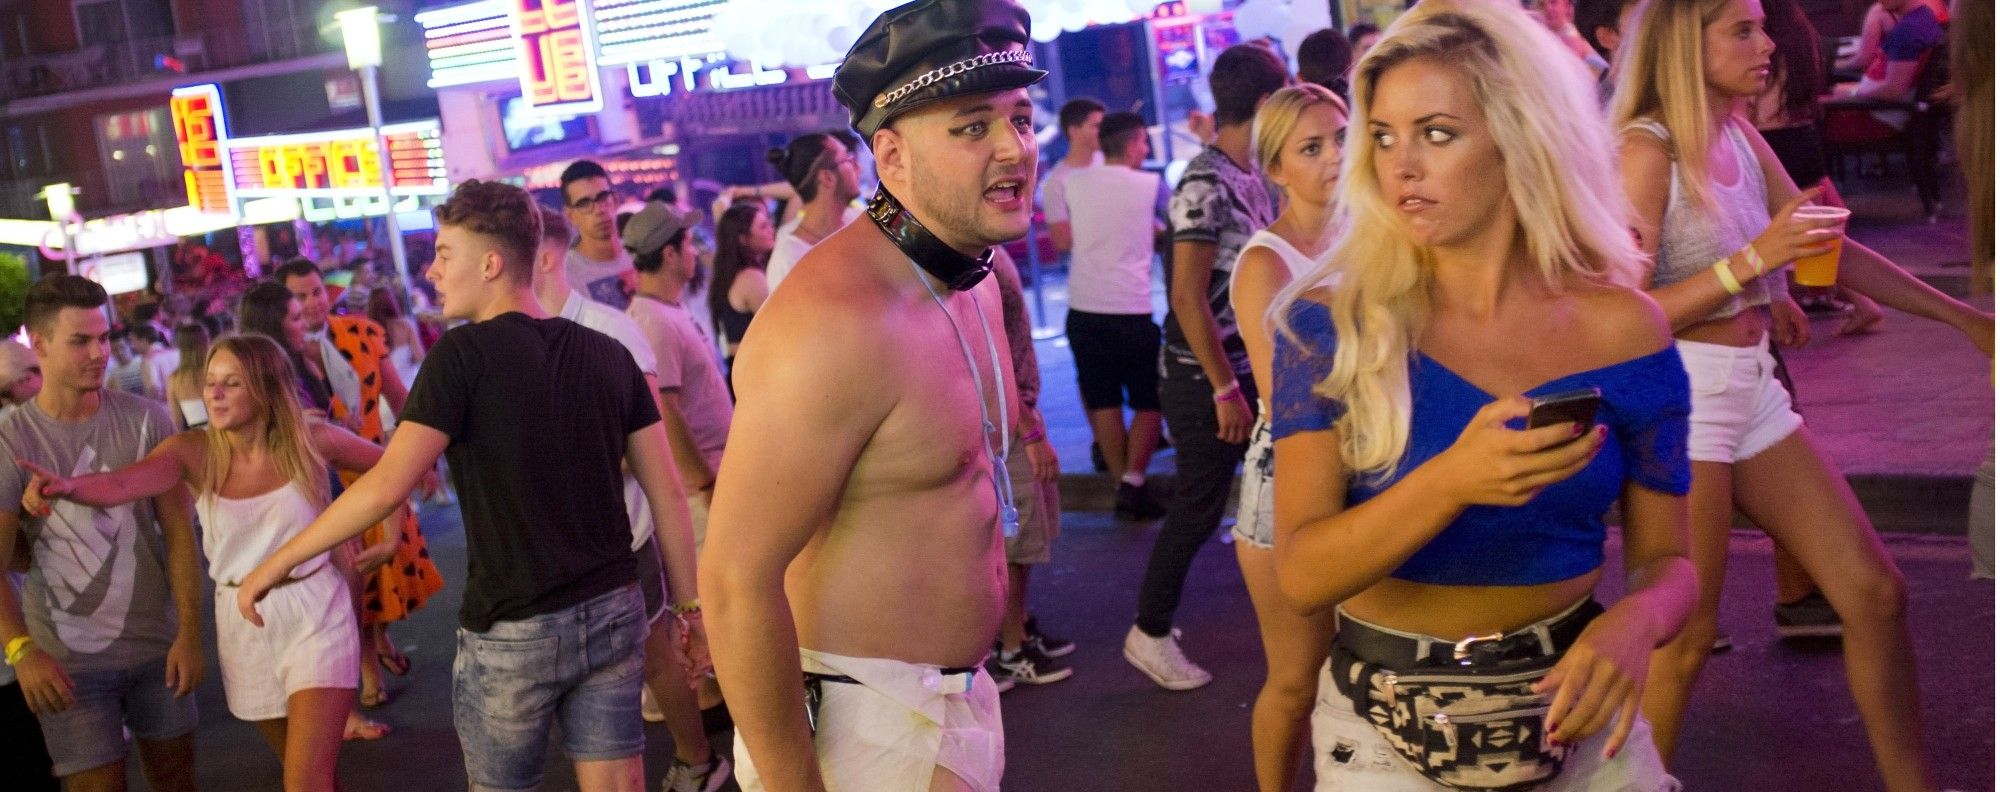 A Briton lets it all hang out in Magaluf, on the Spanish island of Mallorca. Picture: AFP